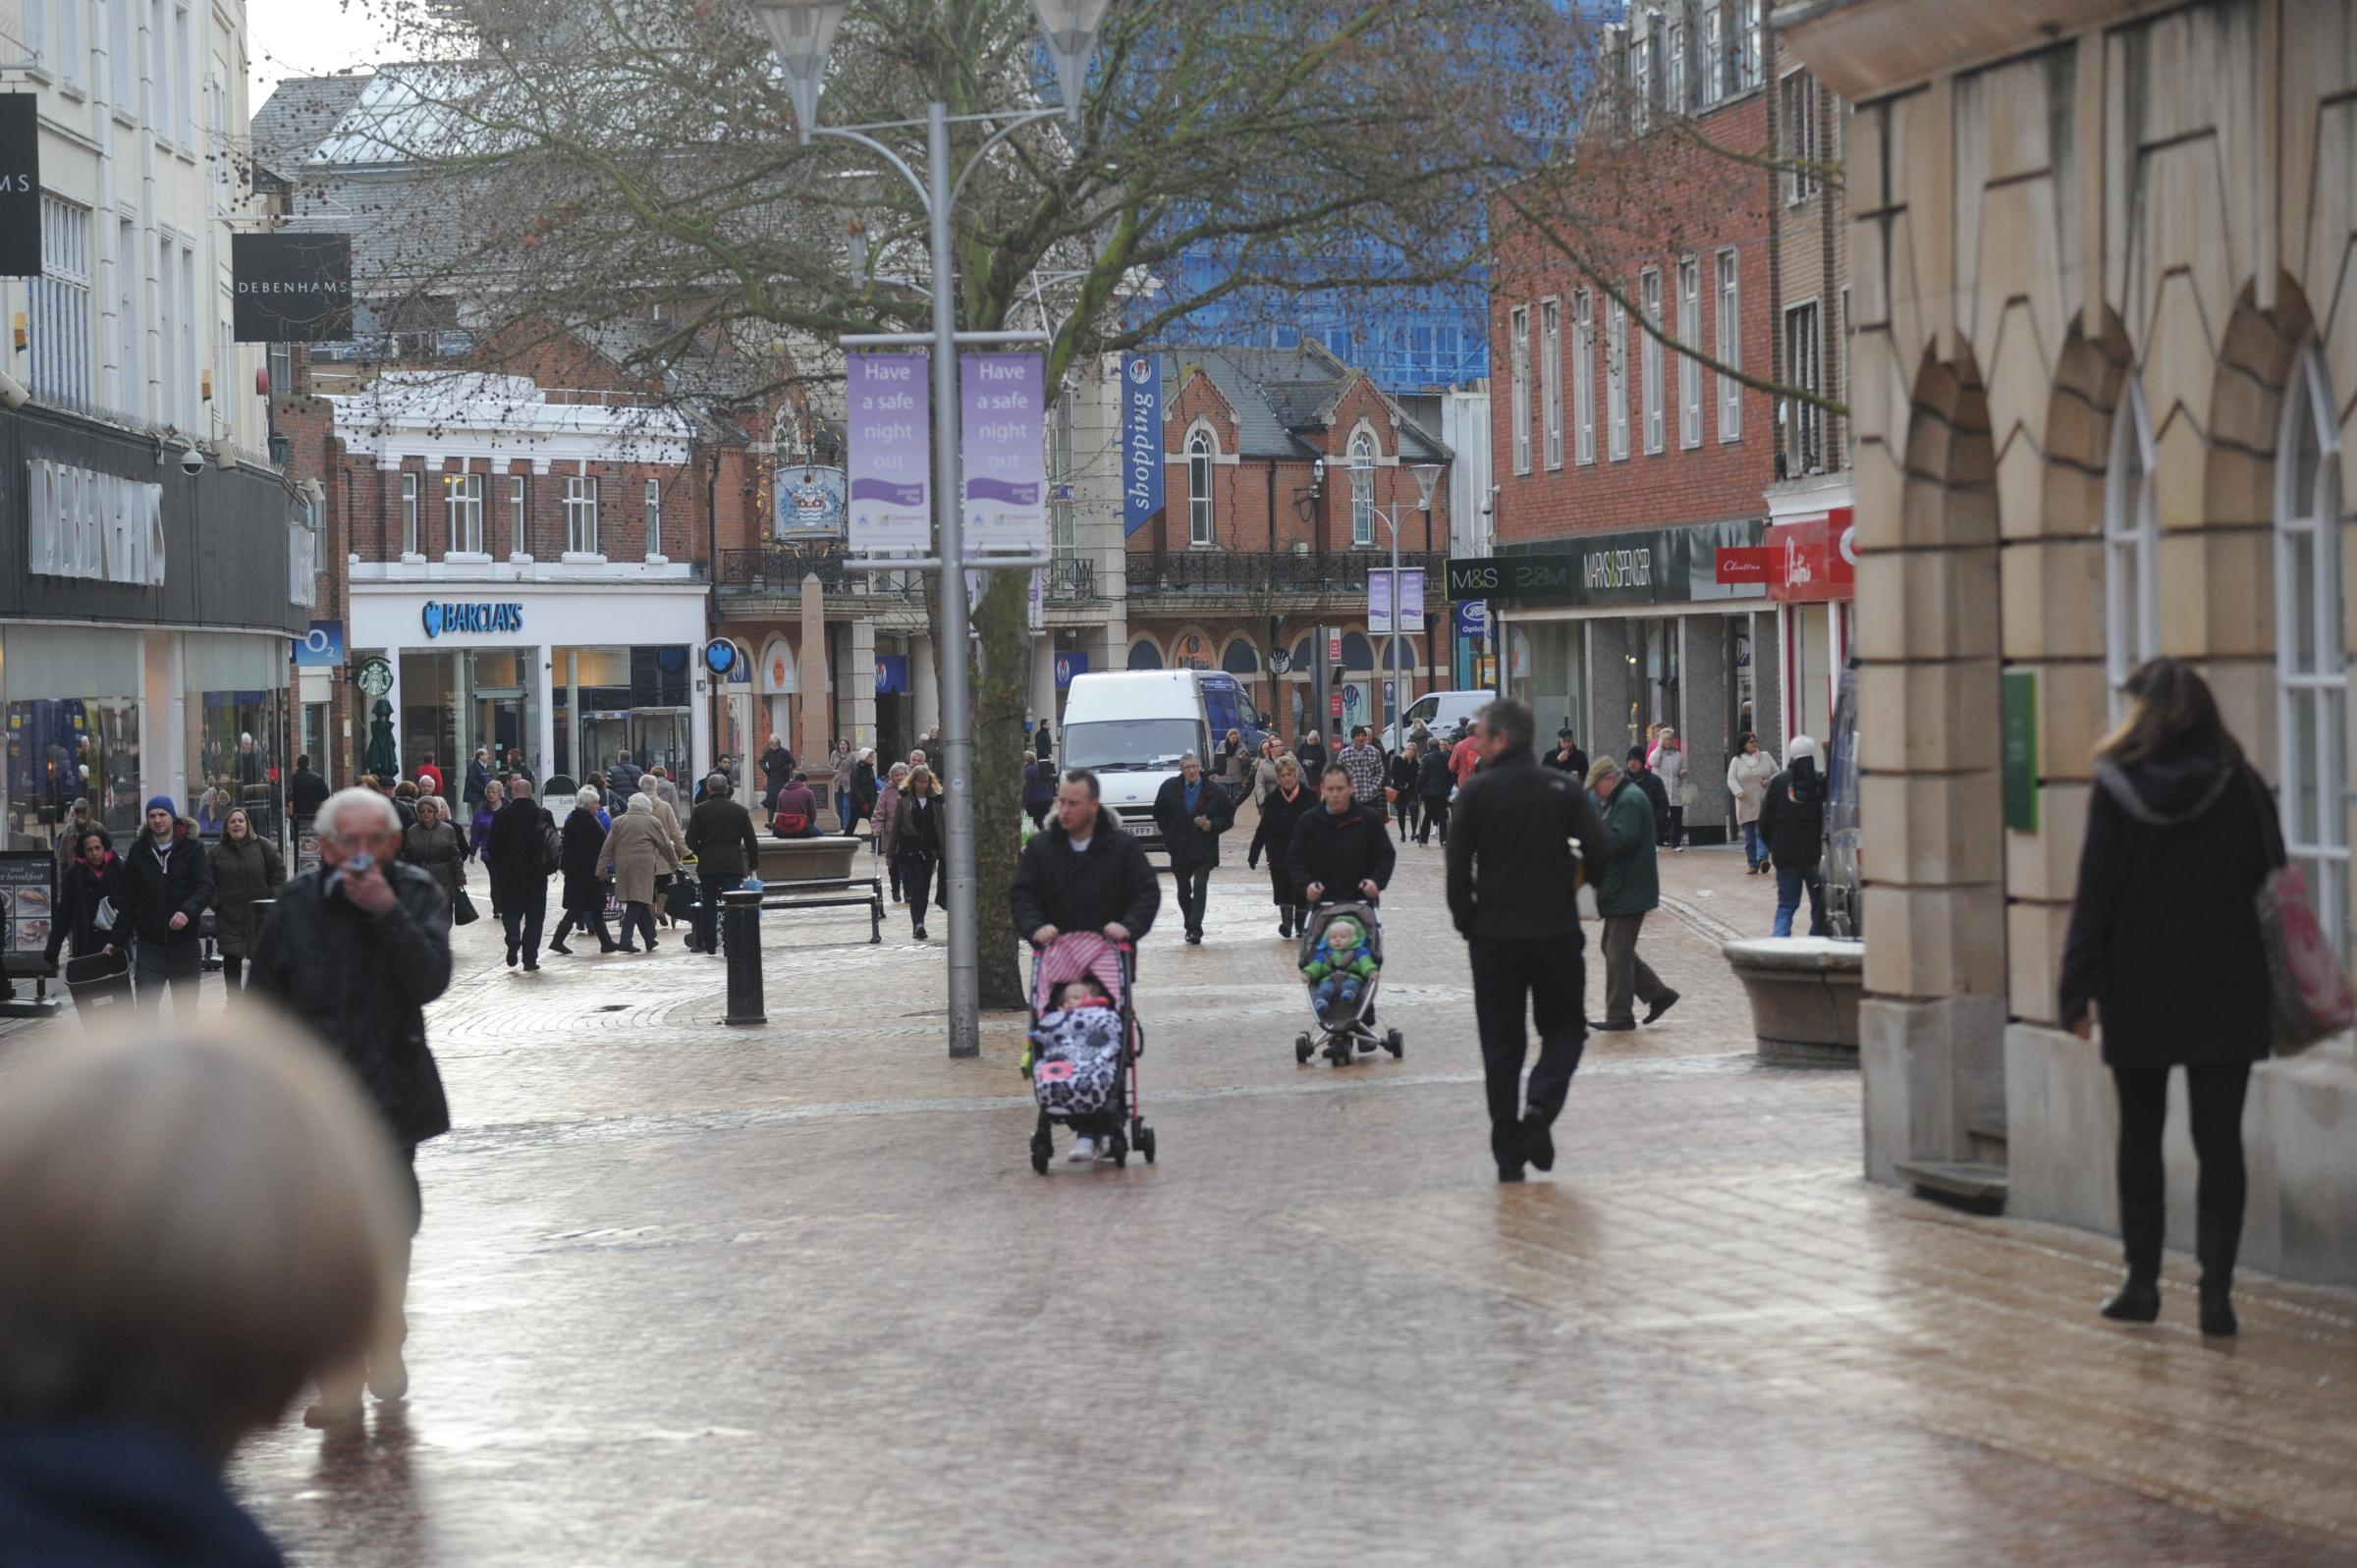 The takeover by Schroders could spark more investment in Chelmsford city centre